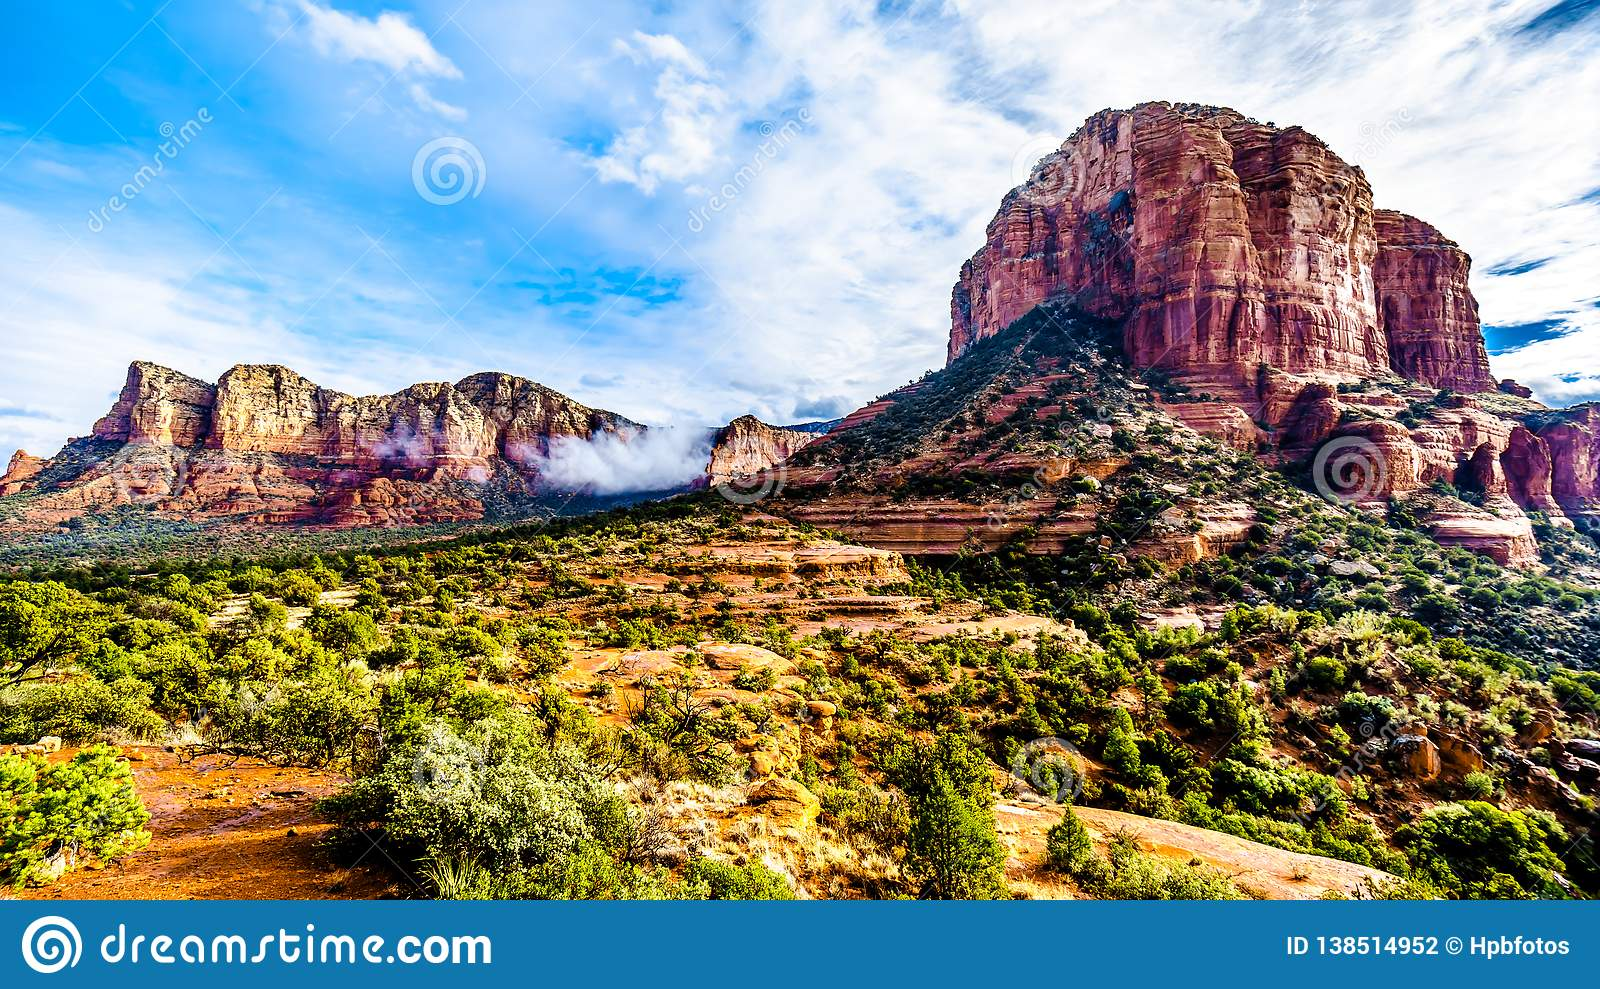 Clouds hanging around Lee Mountain and Courthouse Butte between the Village of Oak Creek and Sedona in northern Arizona